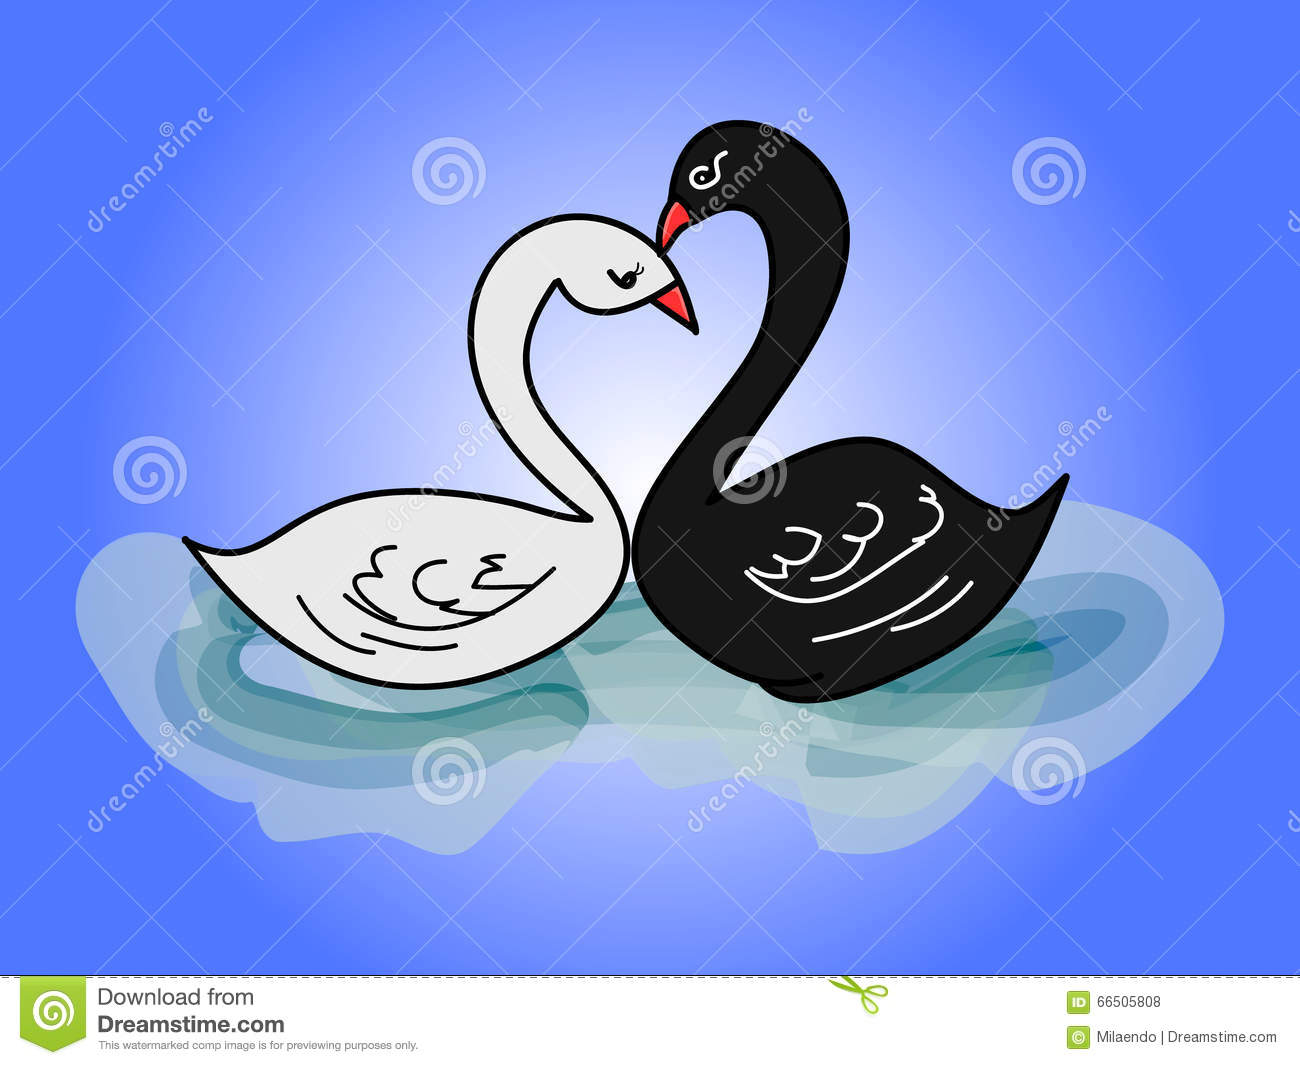 Child S Drawing Two Swans 0 Stock Vector Illustration Of Contour